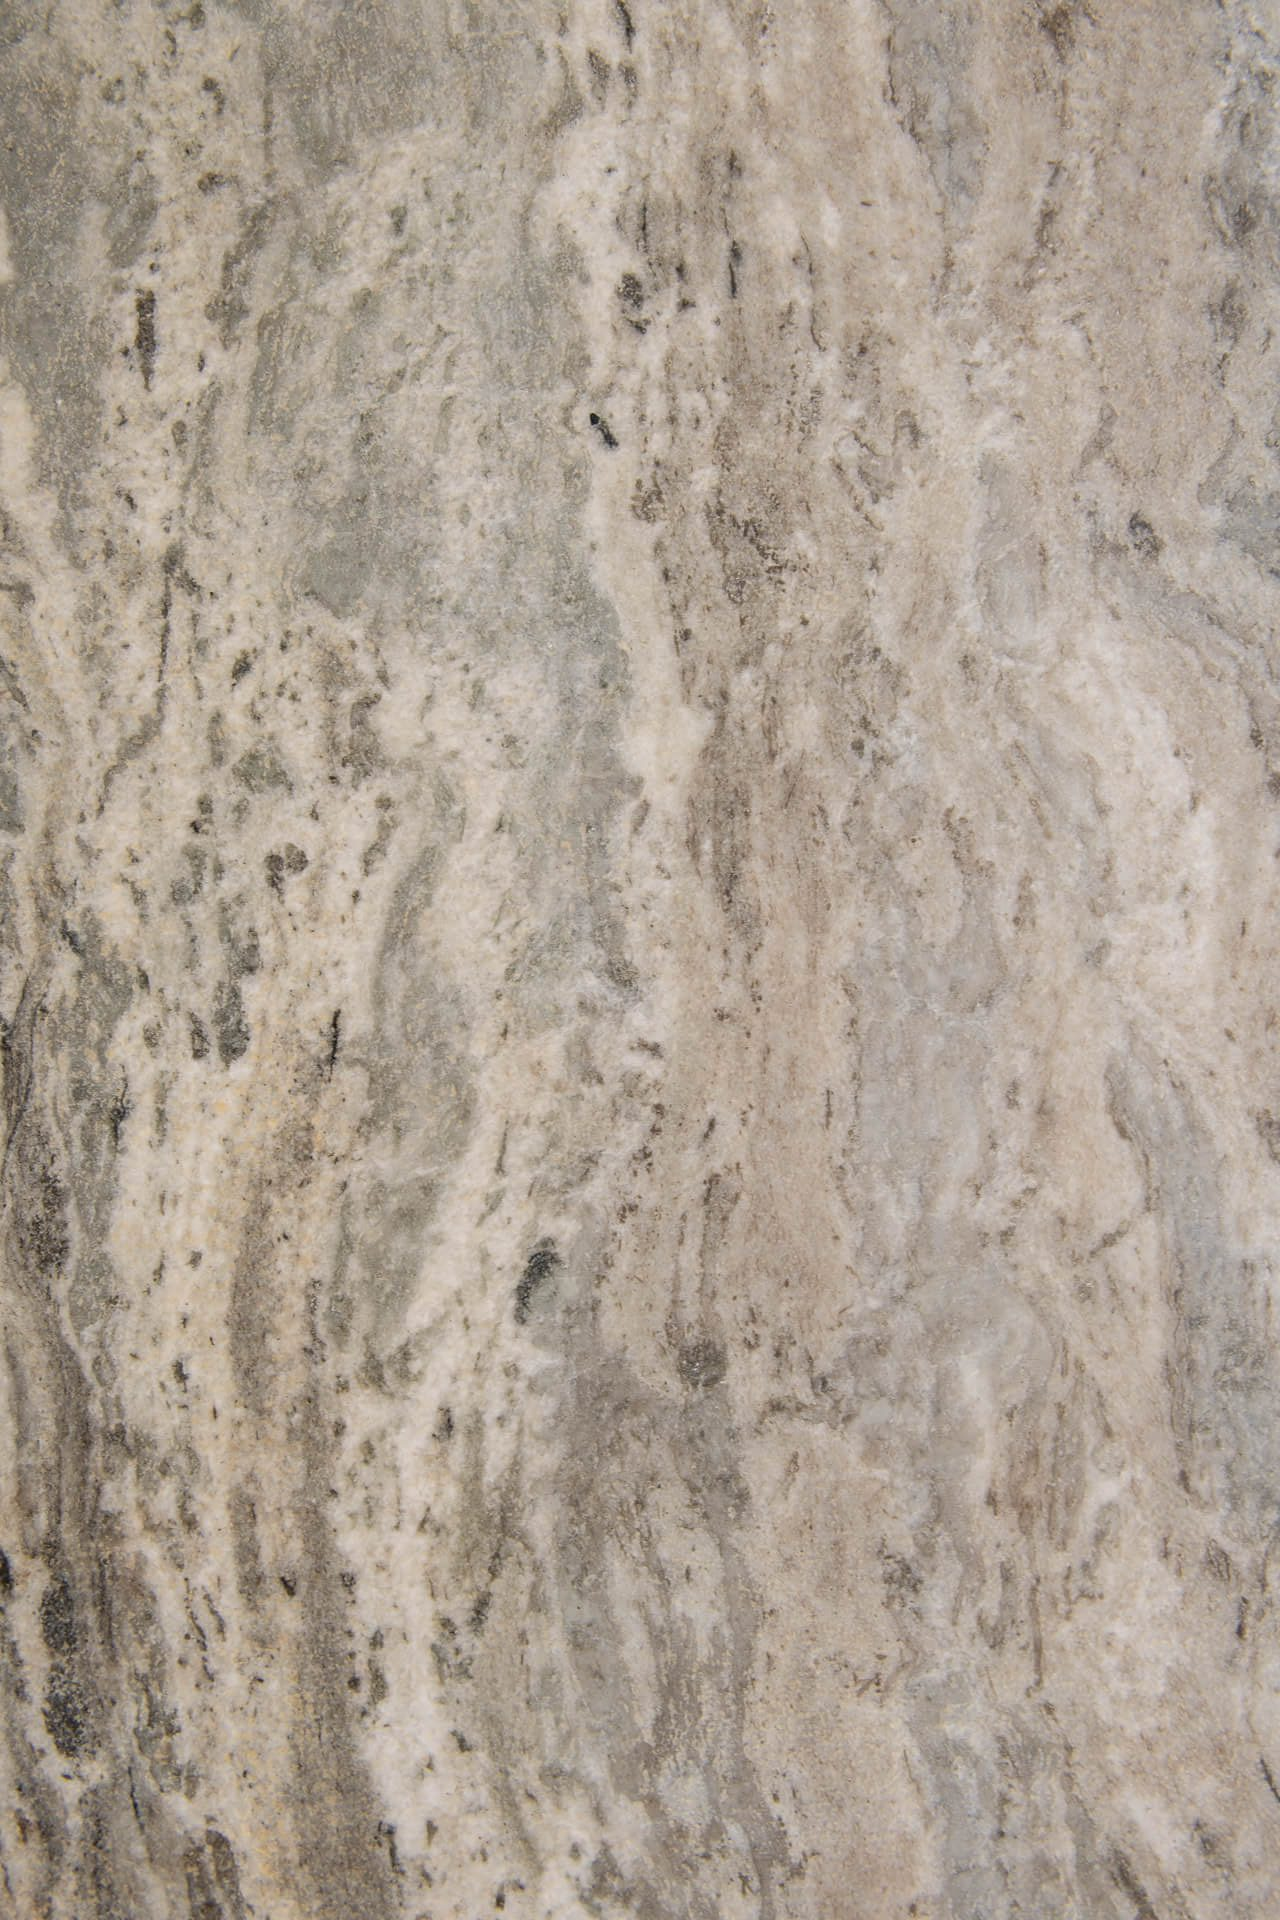 fantasy brown cu countertop - by Magnolia Countertops. A Countertop fabricator of Granite Countertops, Marble Countertops, and Quartz Countertops in Cookeville and Crossville TN.